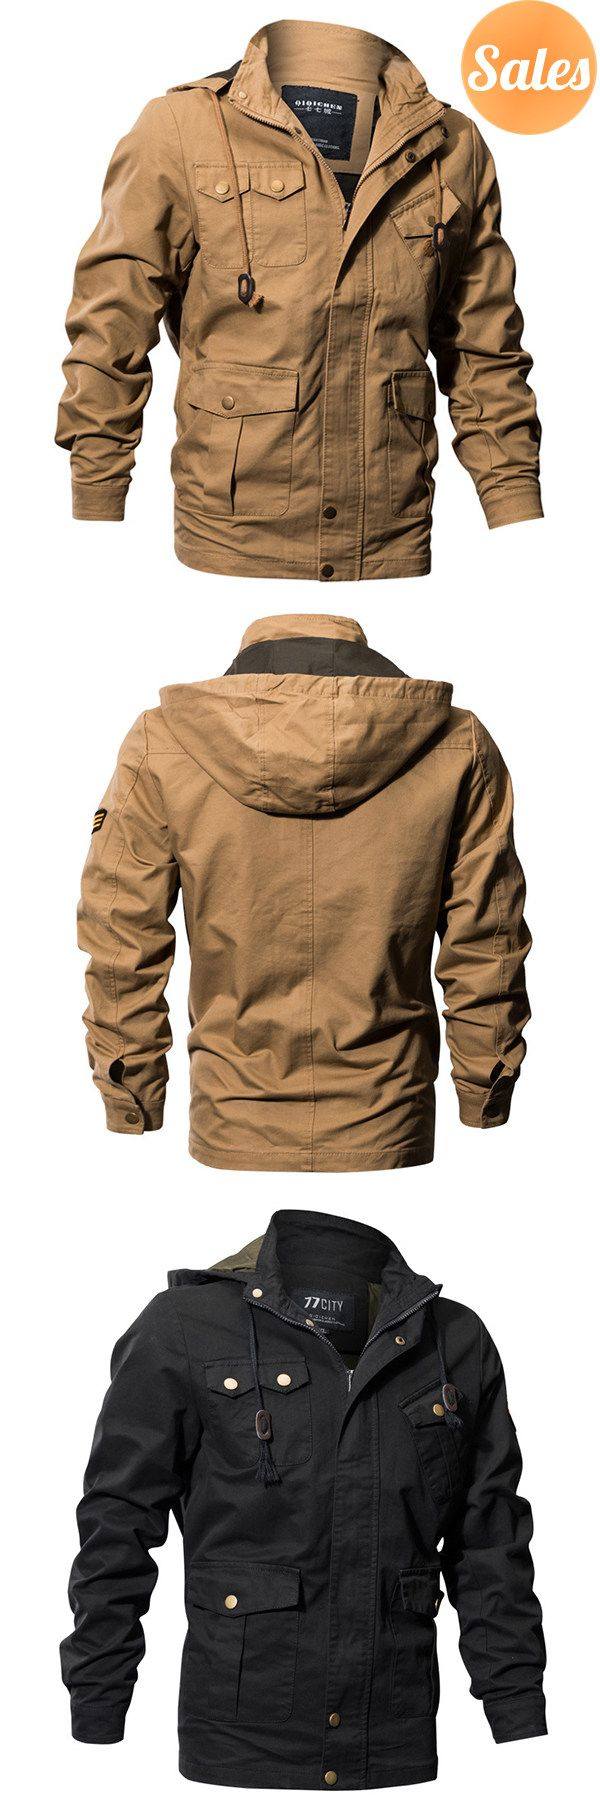 Casual Jackets for men. 3 Colors Optional.